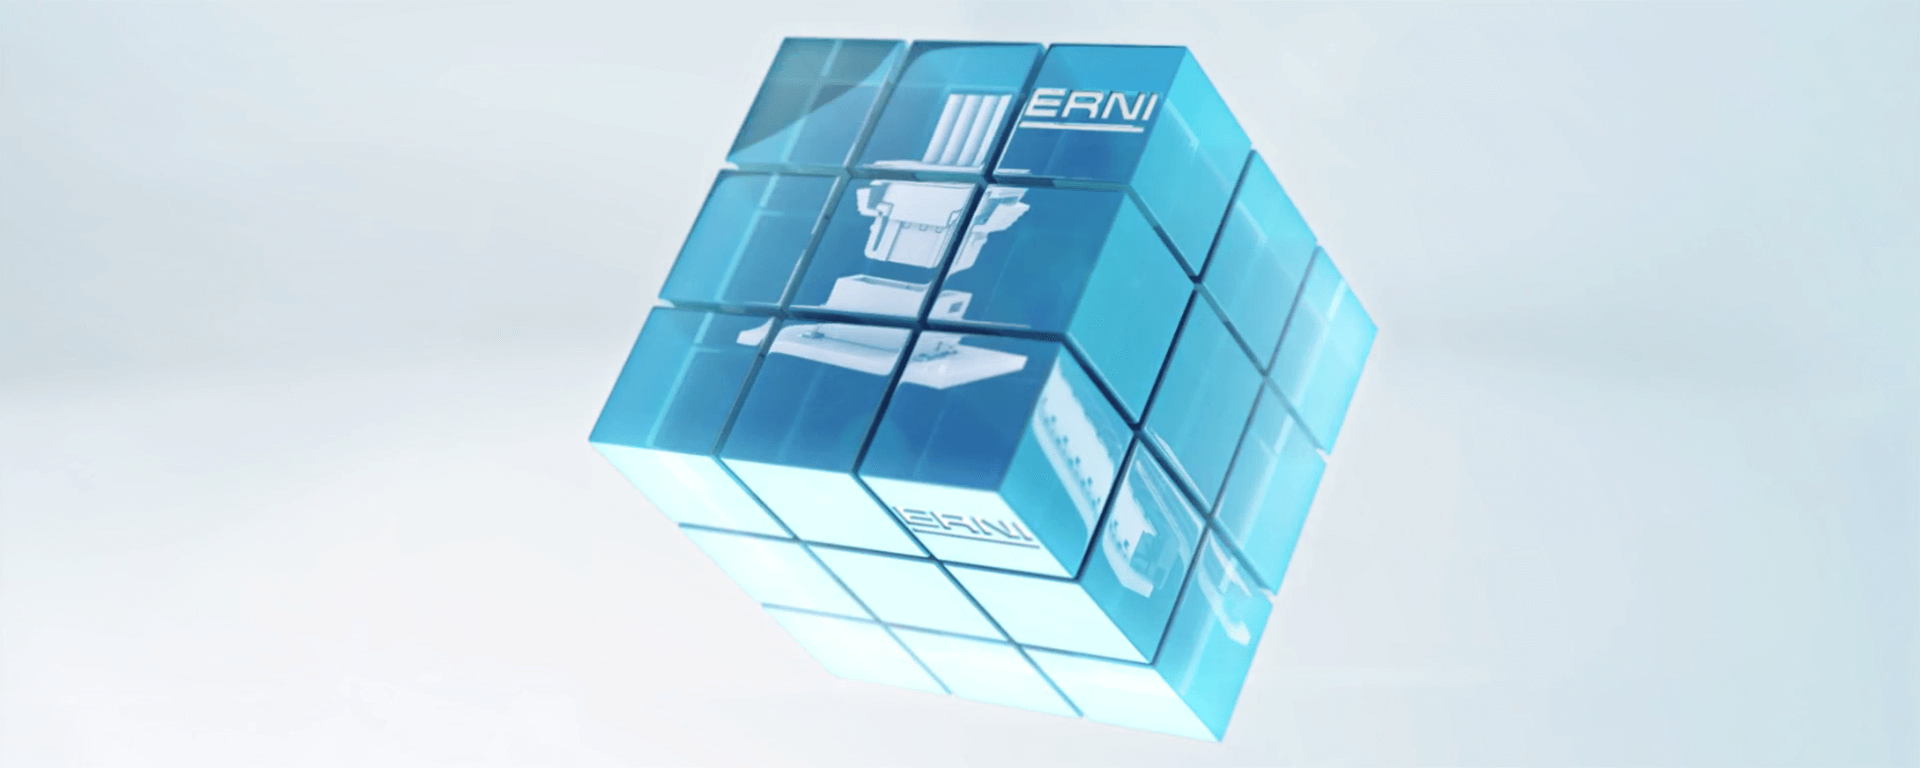 ERNI Product finder